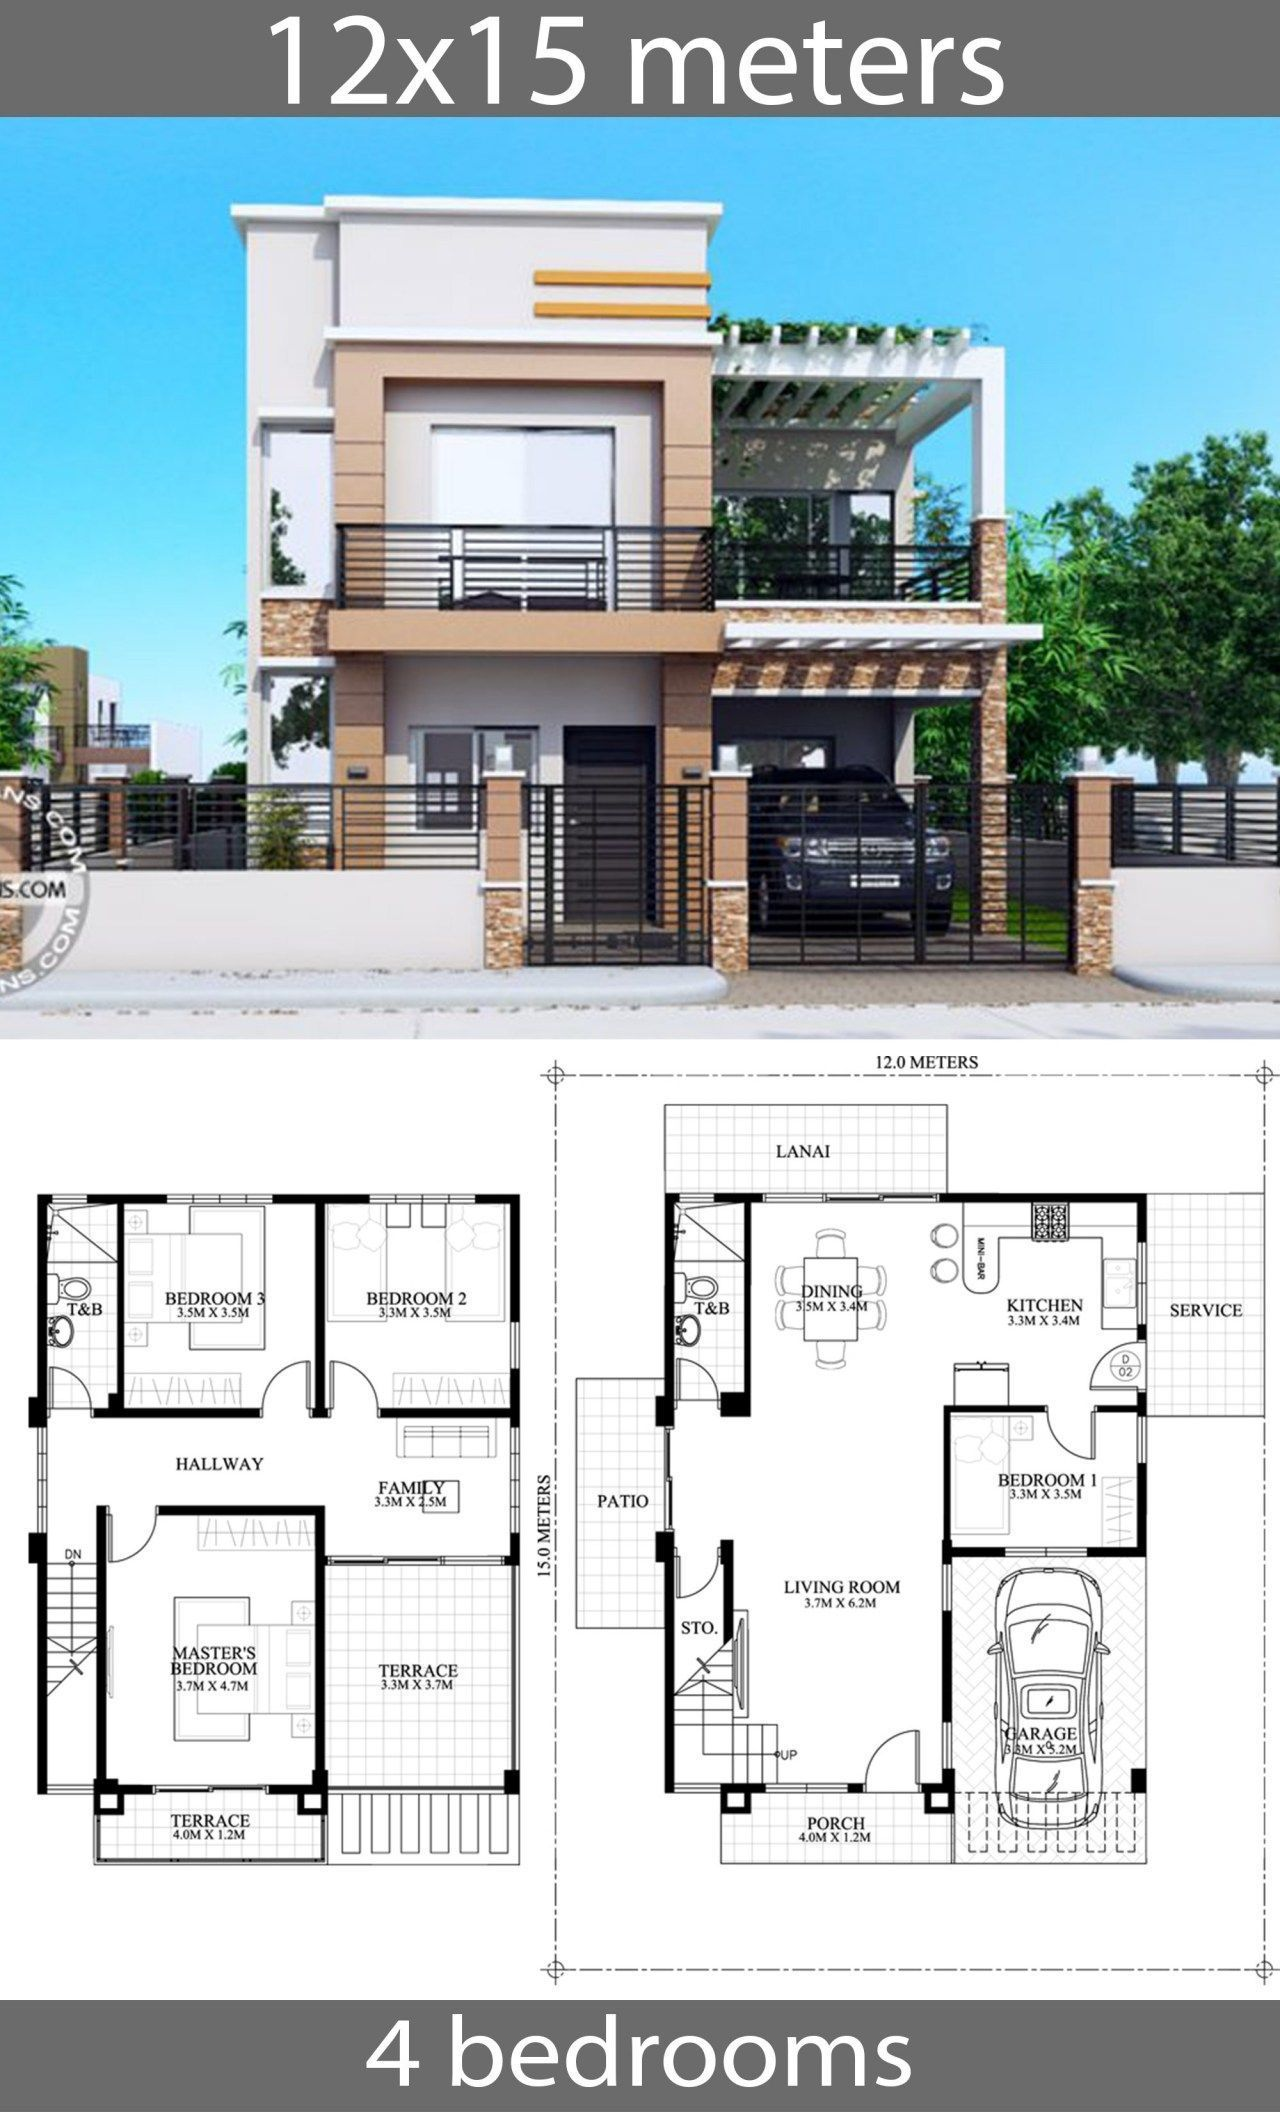 12x15m Bedrooms Home House Ideas Plans Small Modern House Plans Model House Plan House Construction Plan